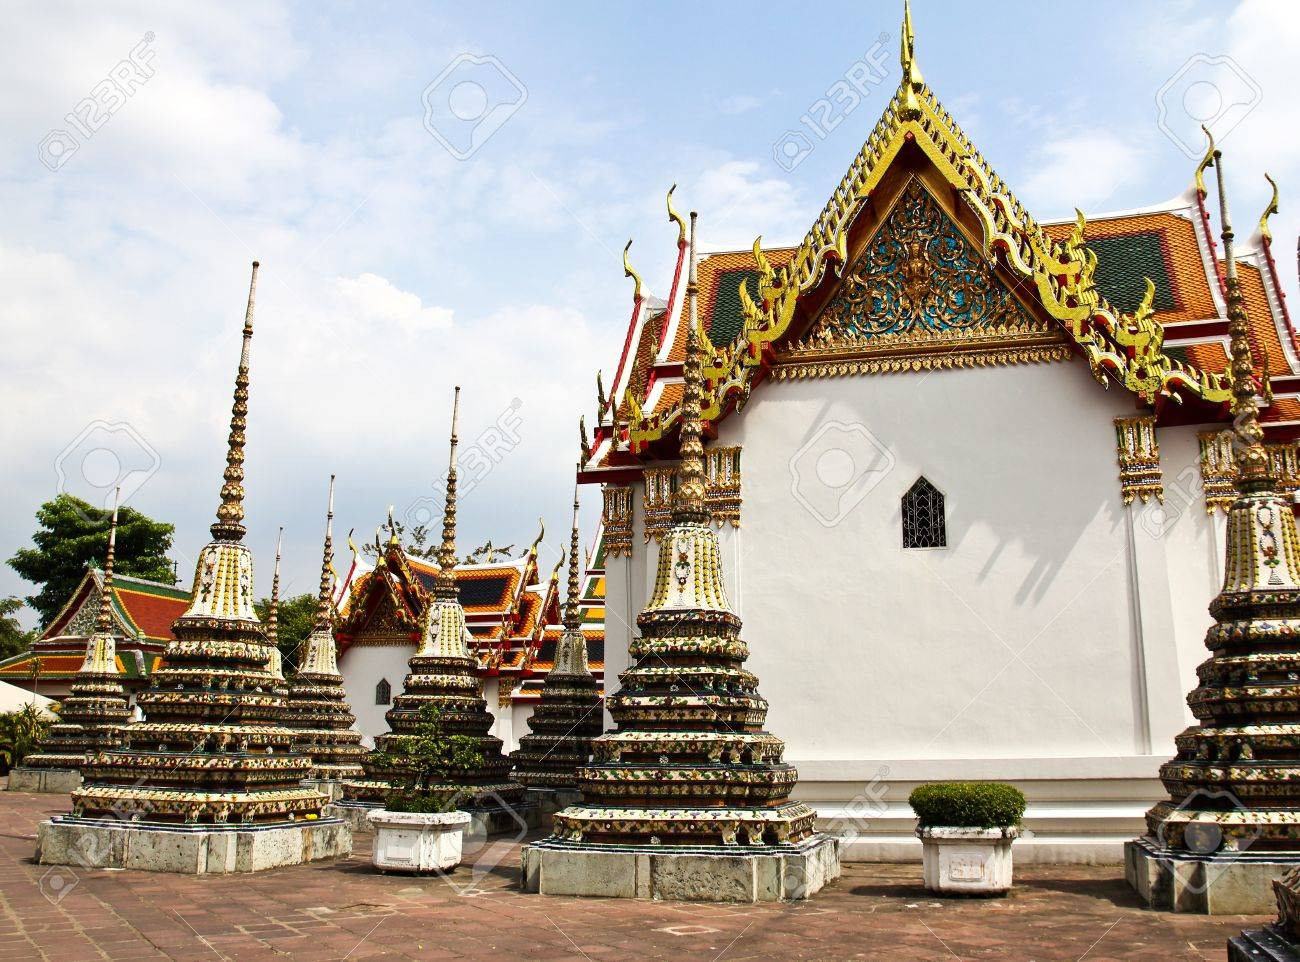 Wat Pho The Temple of reclining buddha Bangkok Thailand. Stock Photo - & Wat Pho The Temple Of Reclining Buddha Bangkok Thailand. Stock ... islam-shia.org